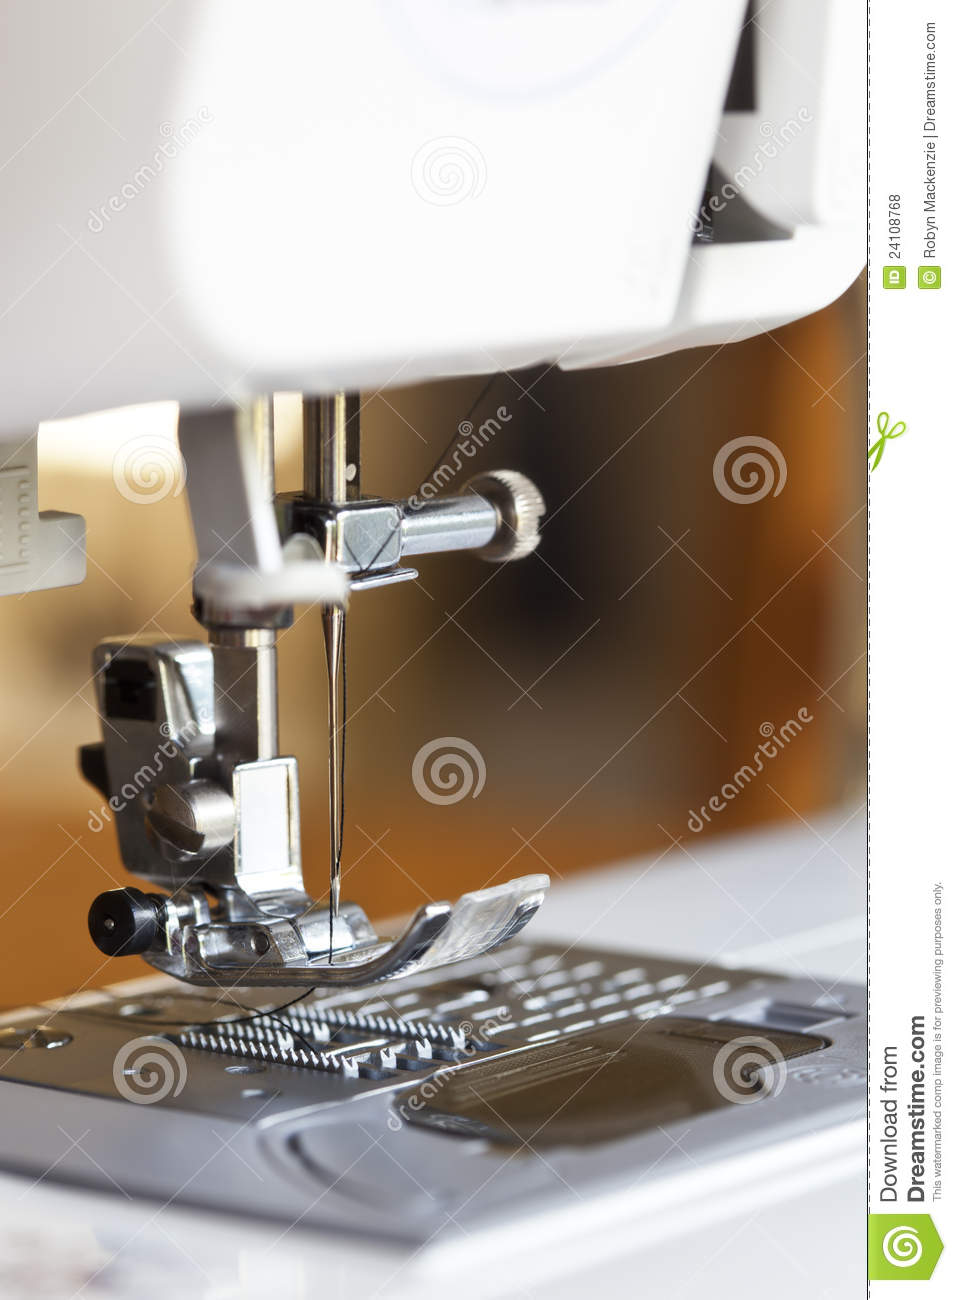 modern sewing machine royalty free stock photos image 24108768. Black Bedroom Furniture Sets. Home Design Ideas